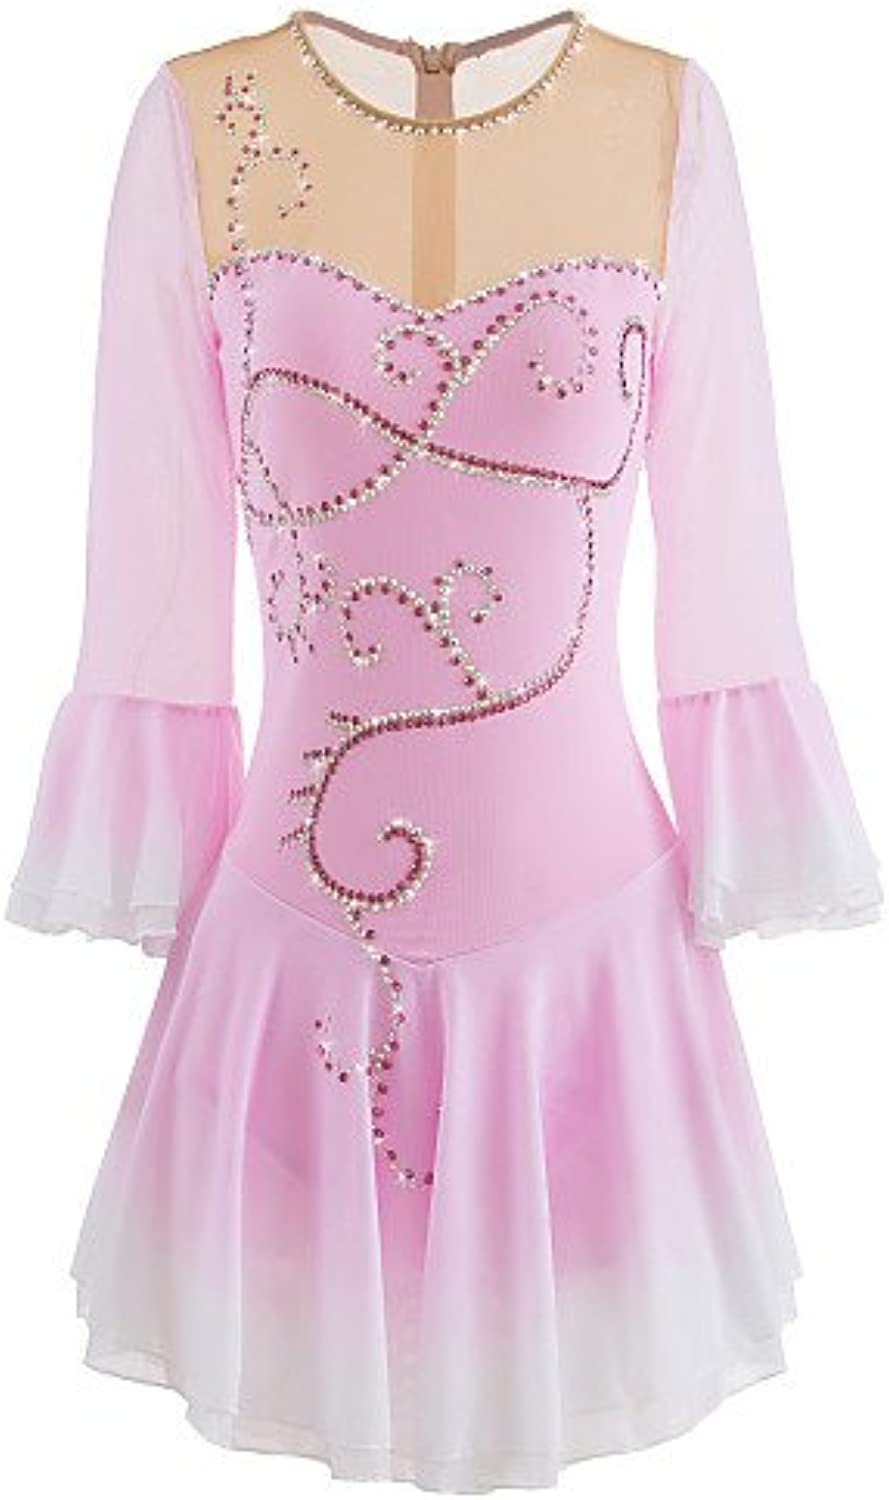 Heart&M Ice Skating Dress for Girls Women Figure Skating Competition Costume Professional Half Sleeved Pink White